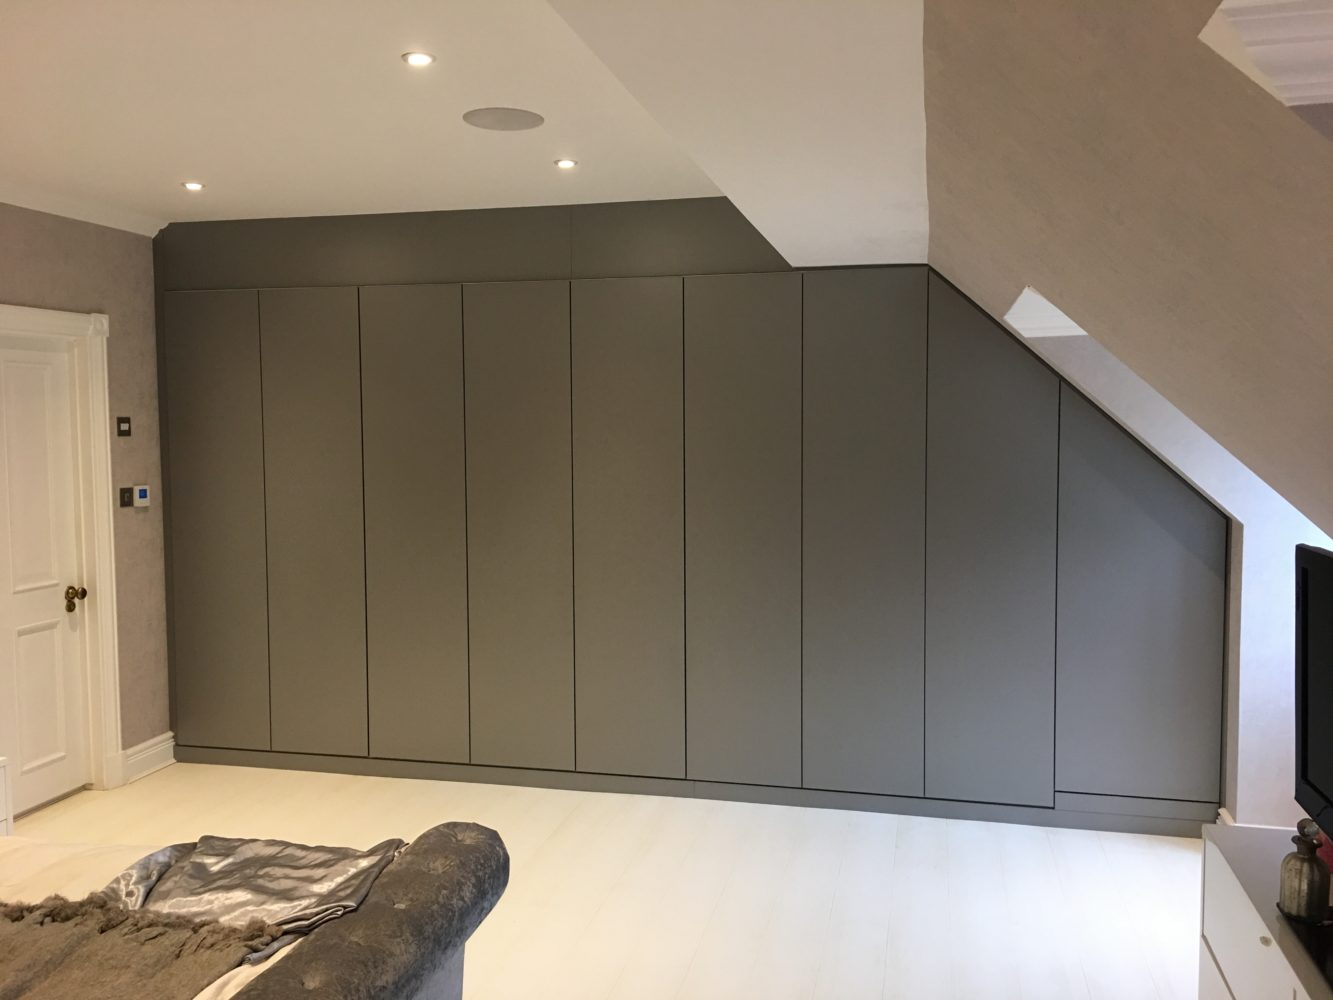 Read this article before you buy ed wardrobes England Built In Wardrobes on built in dining, built in storage, built in showers, built in fireplaces, built in bureaus, built in lockers, built in cupboards, built in lamp tables, built in bars, built in shutters, built in bookshelves, built in books, built in shelving, built in bedrooms, built in dressers, built in toy boxes, built in desks, built in drawers, built in closets, built in trunks,